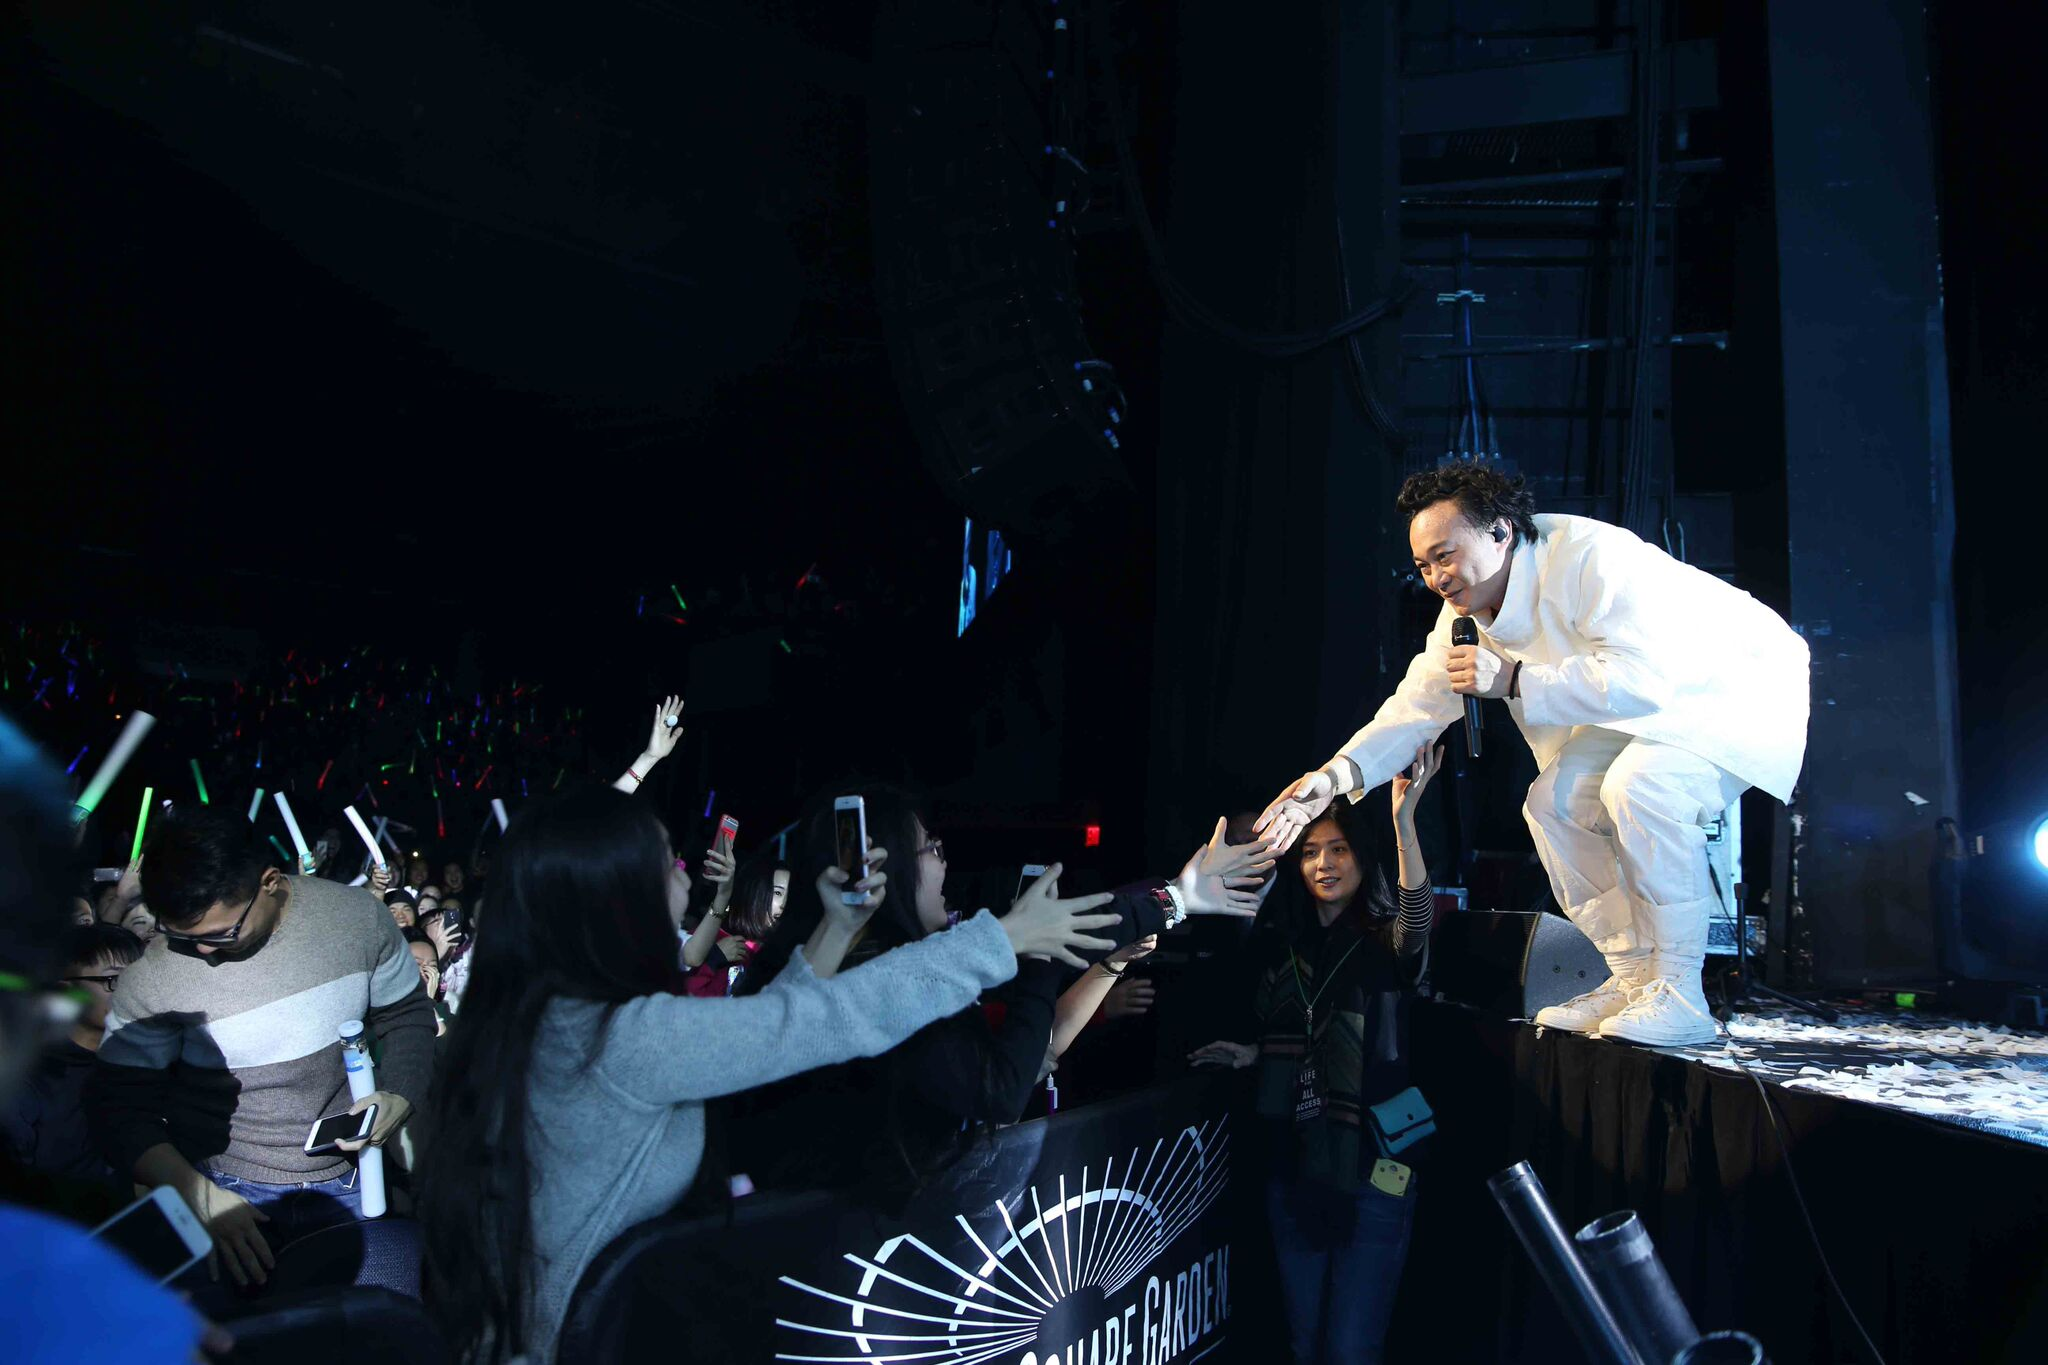 Mandopop King Eason Chan finishes up world tour with final stop in Toronto